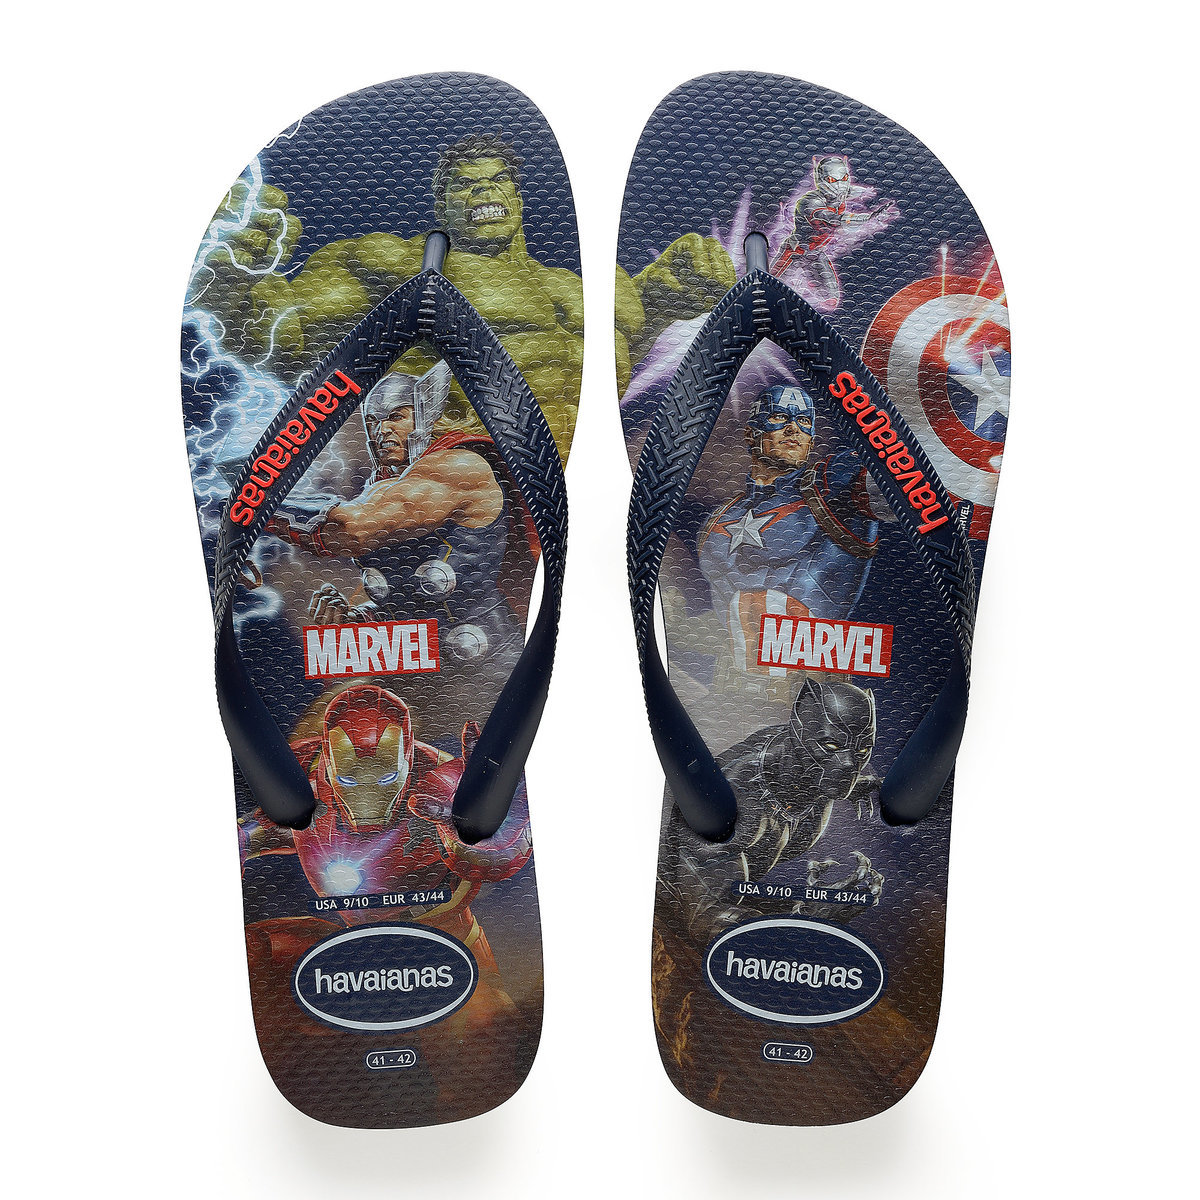 b57f30a51 Product Image of Marvel s Avengers Flip Flops for Men by Havaianas   1